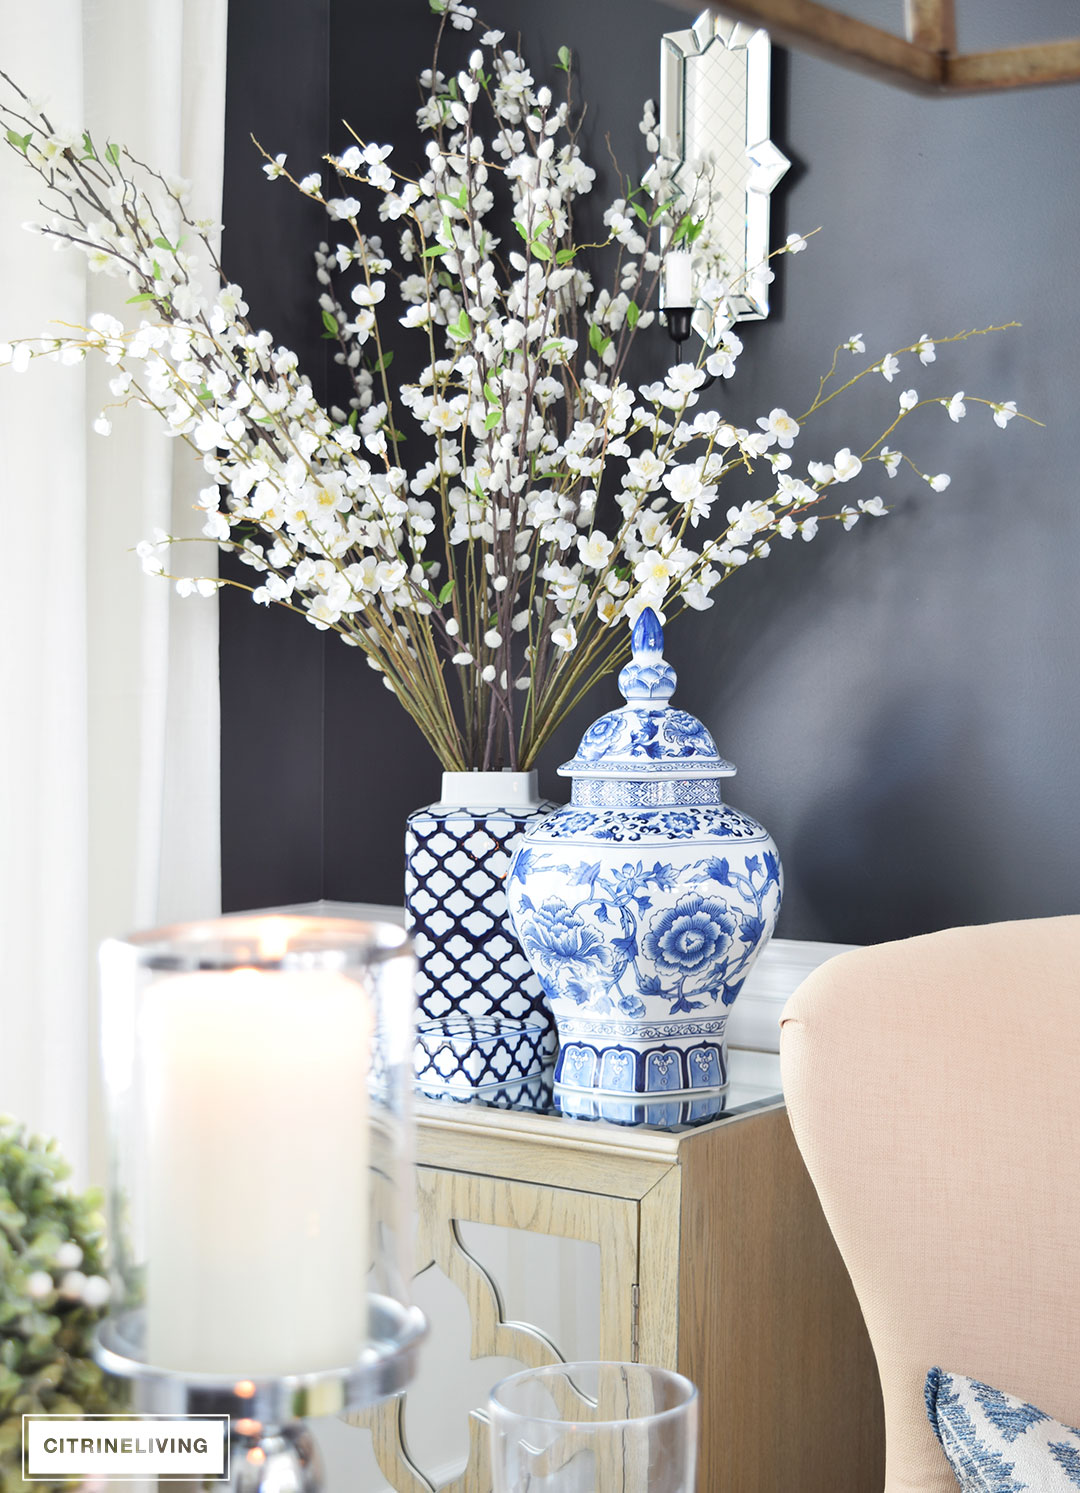 Blue and white ginger jars with a mix of Spring branches are an elegant addition to any space.